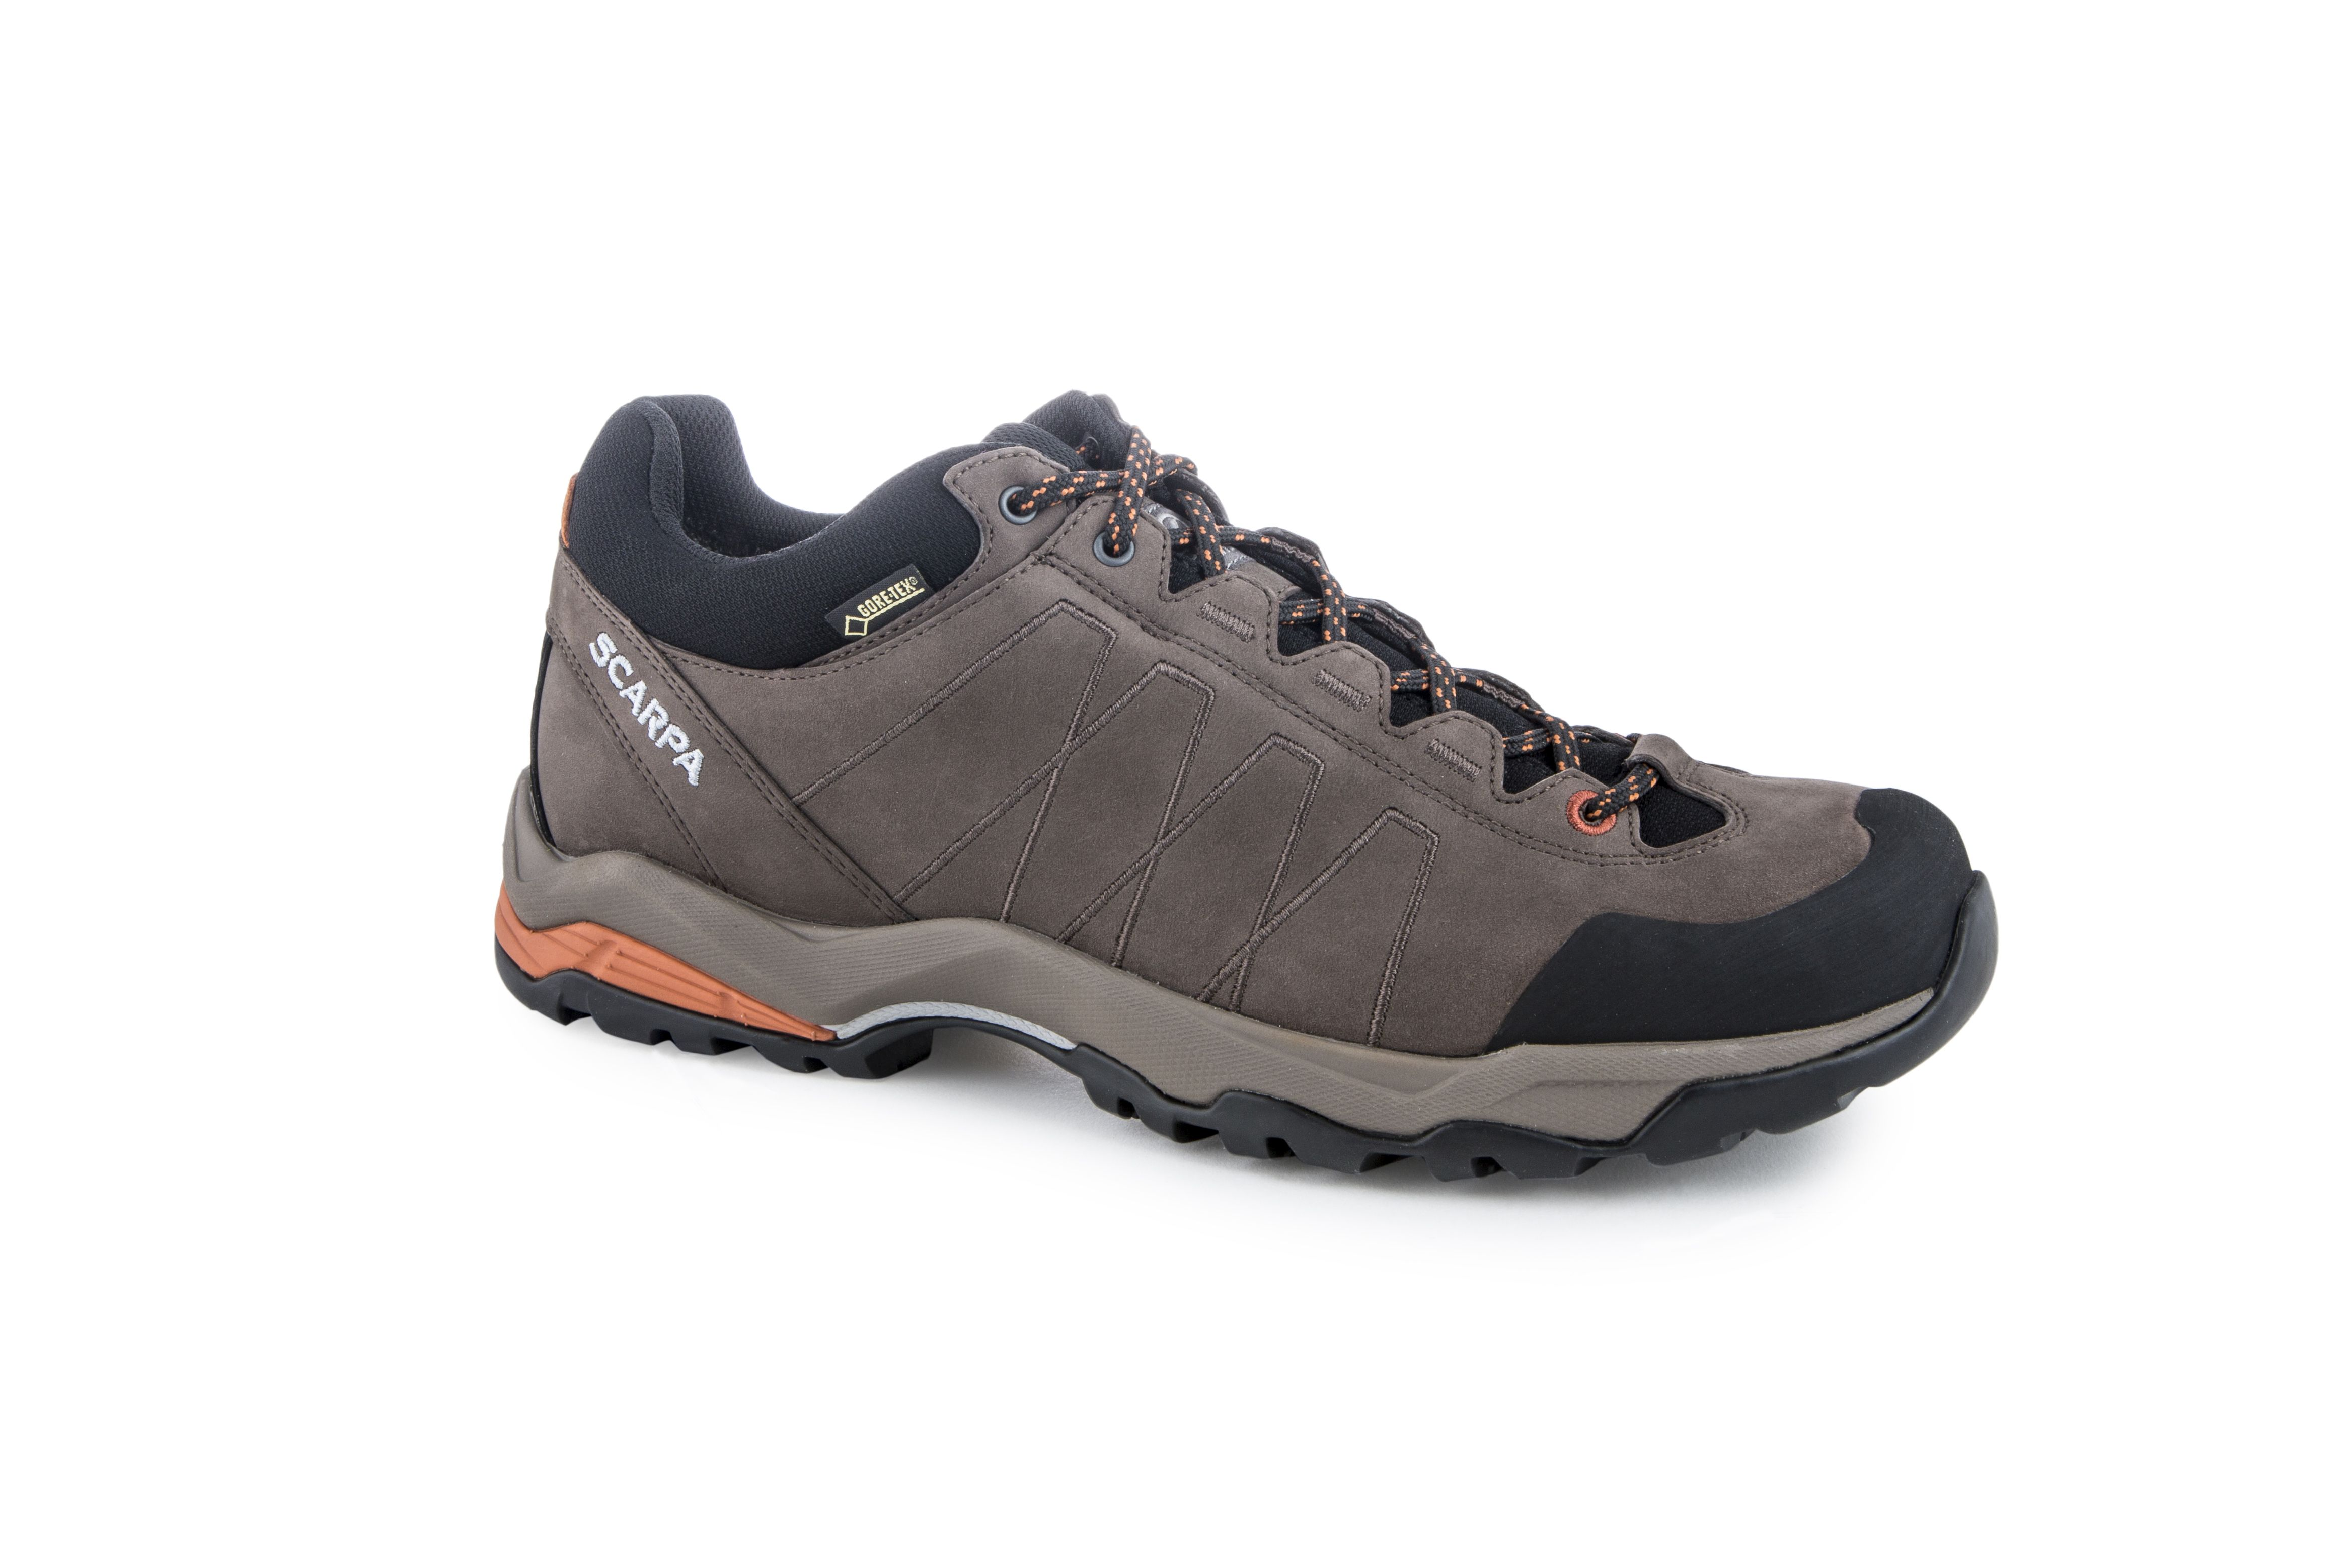 Scarpa Moraine Plus GTX Charcoal/Mango-30